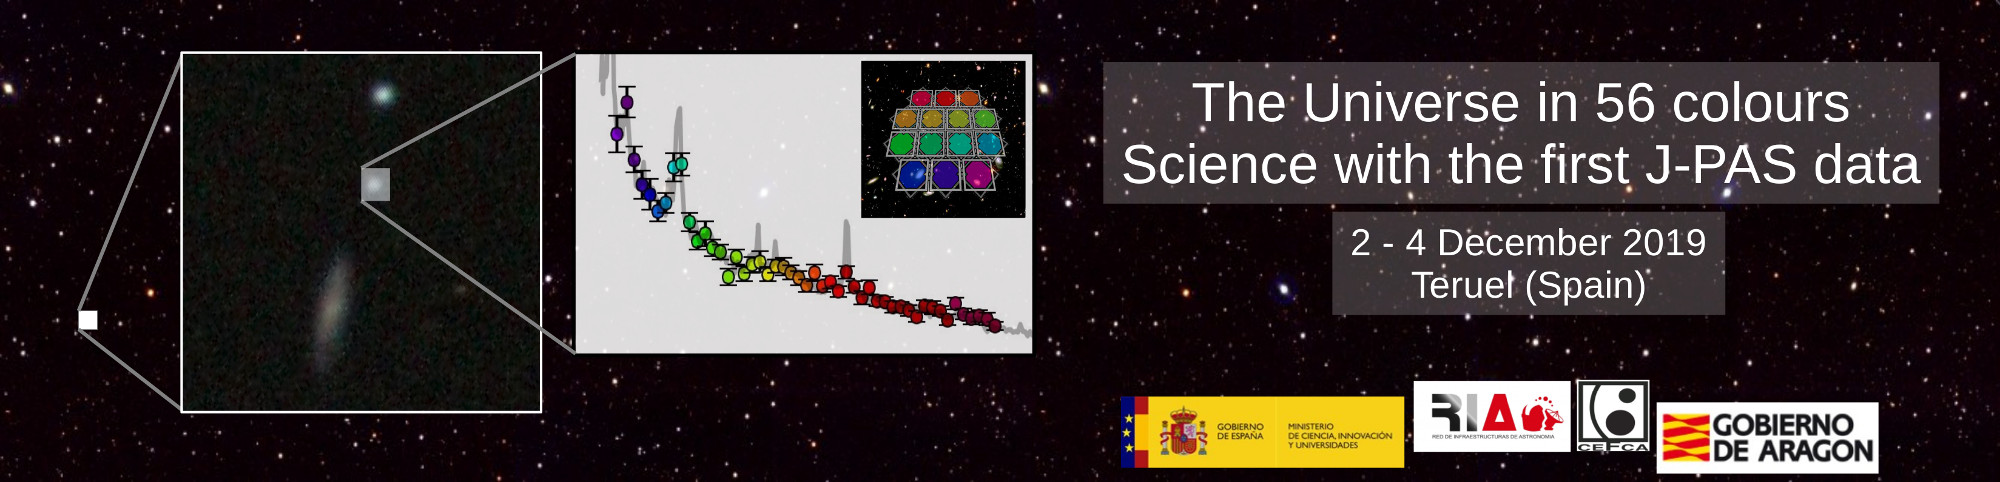 The Universe in 56 colours: science with the first J-PAS data